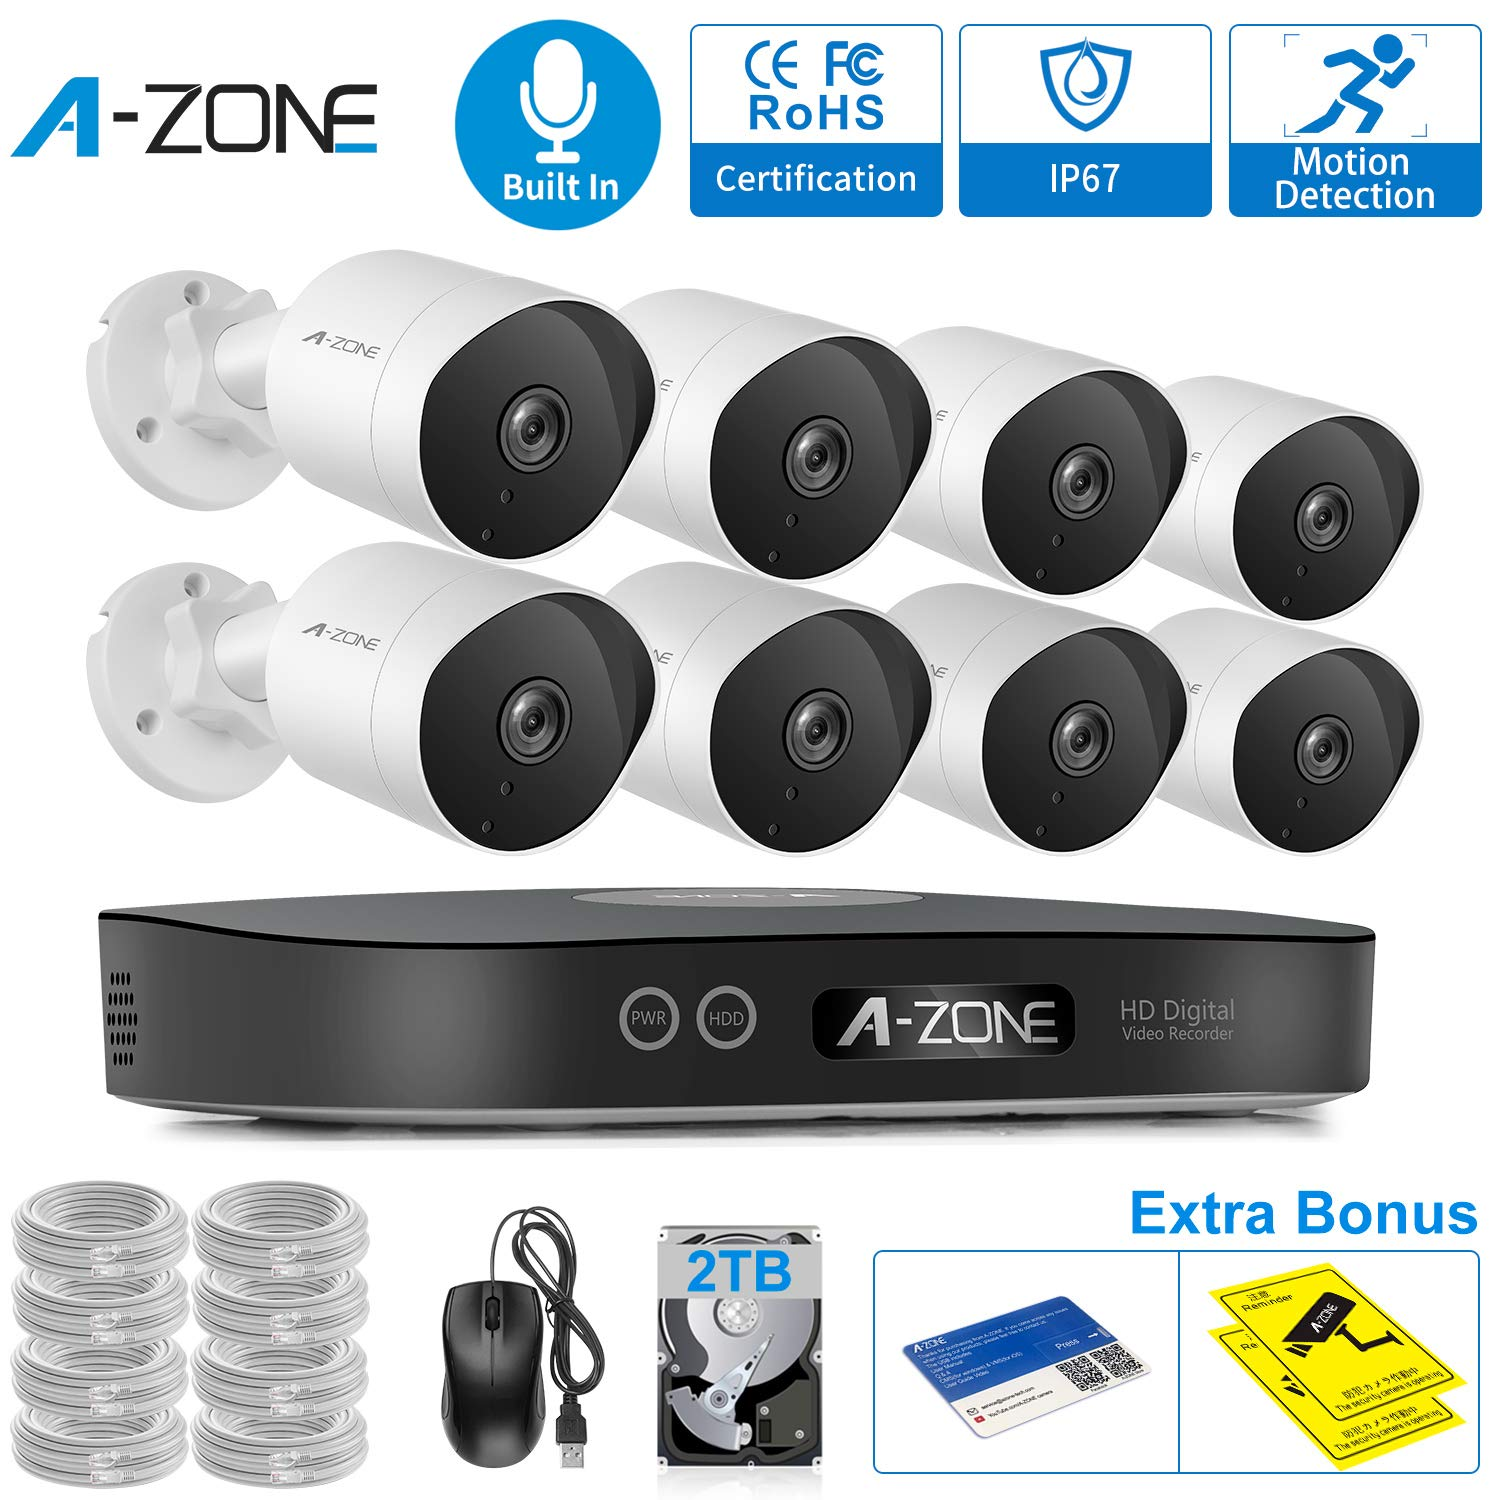 Security Camera System 8CH 1080P Bullet IP PoE System, 8 Outdoor Indoor 3.6mm Fixed Lens 2.0 Megapixel IP67 Waterproof Cameras,Smart Motion Detection, Free Remote View – 2TB Hard Drive